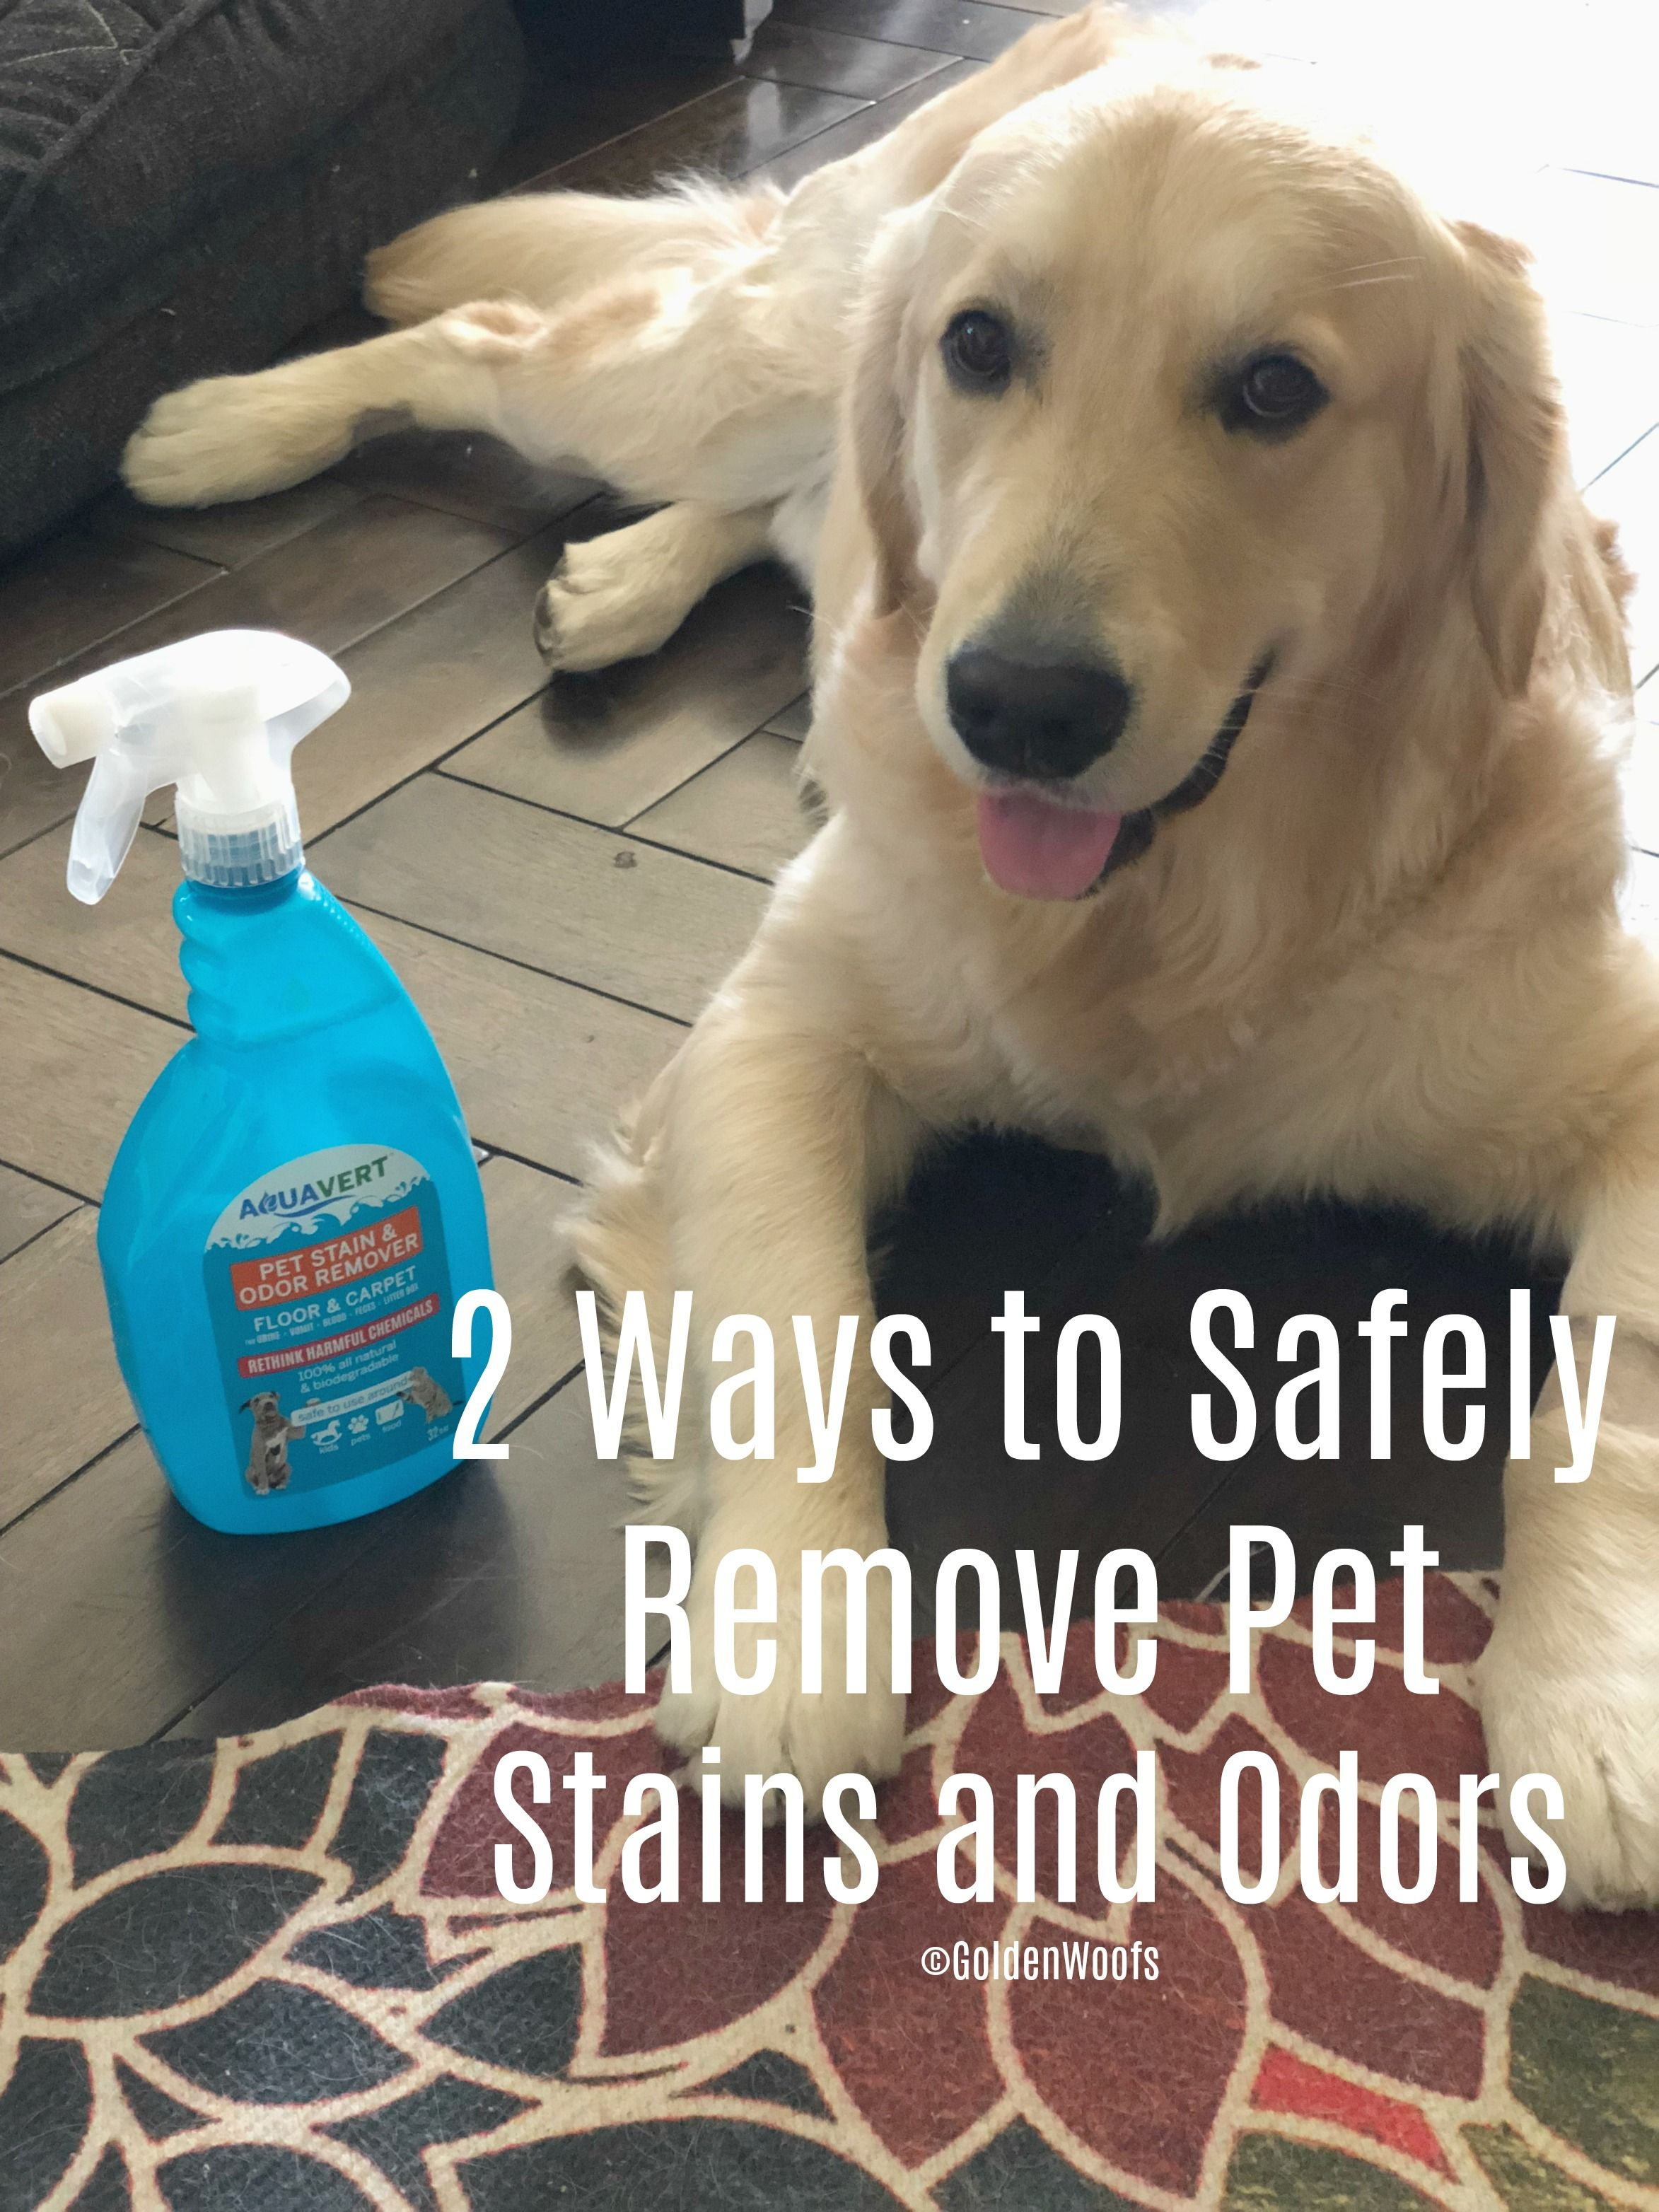 2 Ways to Safely Remove Pet Stains and Odors